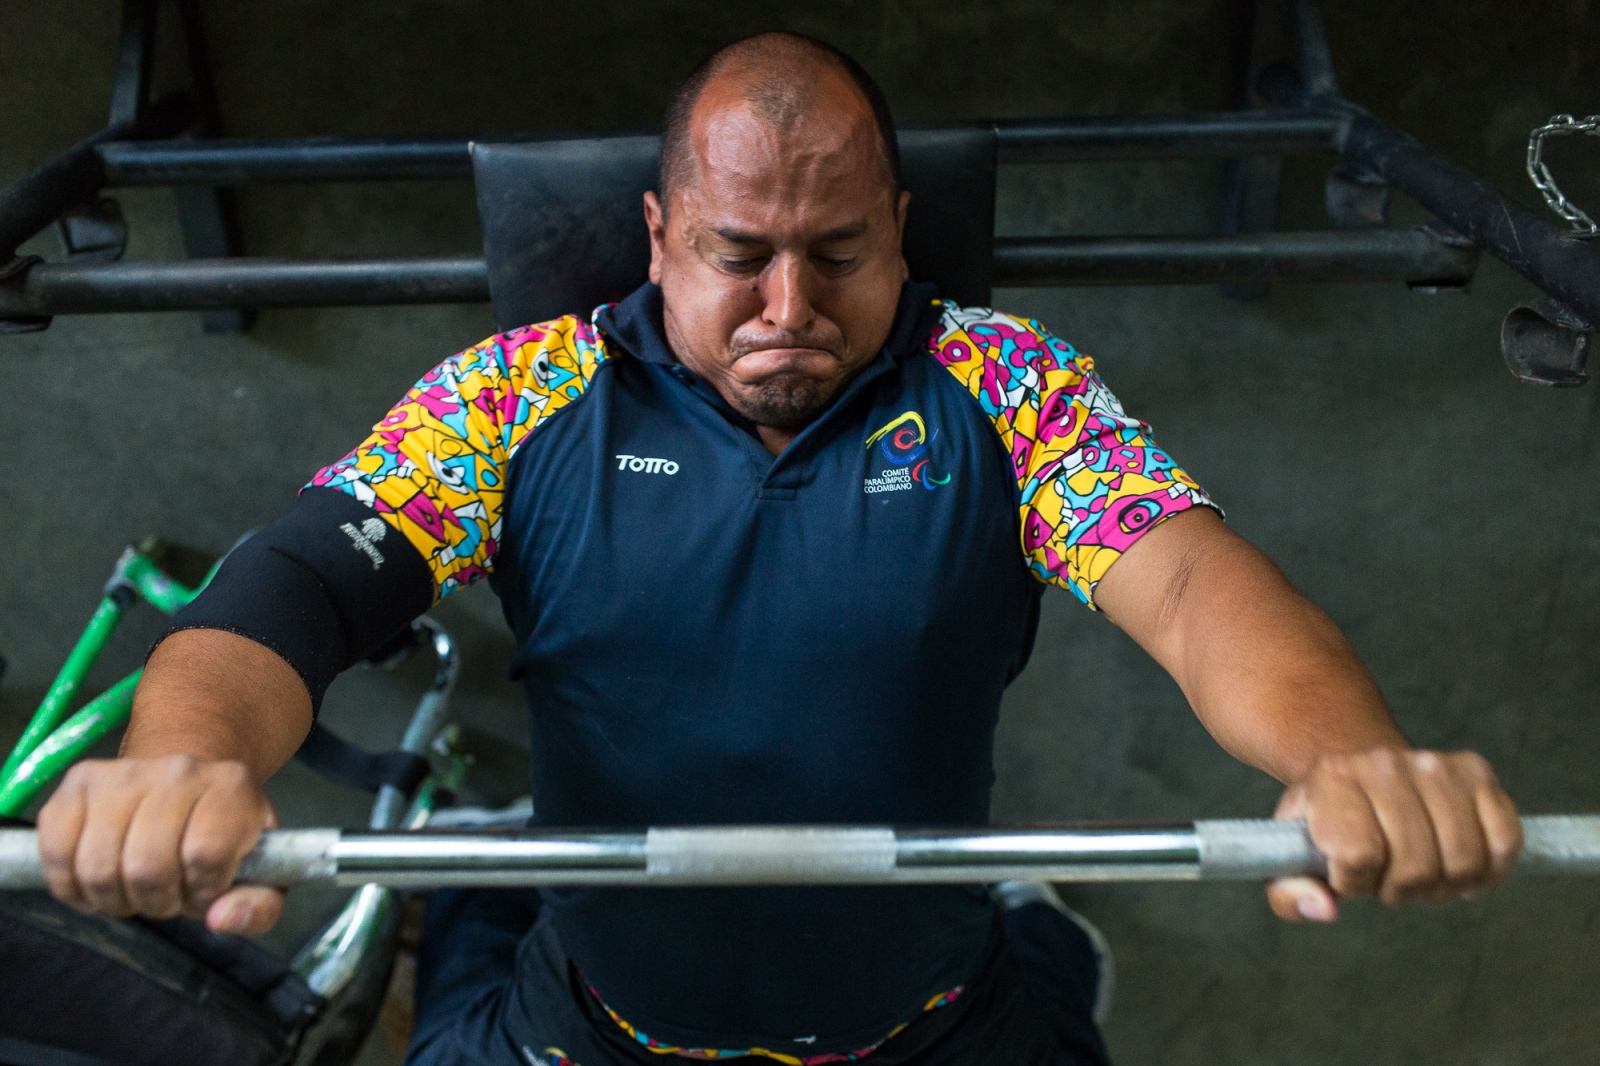 Joe Gonzalez Bettencourt, 38, lifts weight during a gym session at Atanasio Girardot Stadium, Medellin, 8th March, 2016.